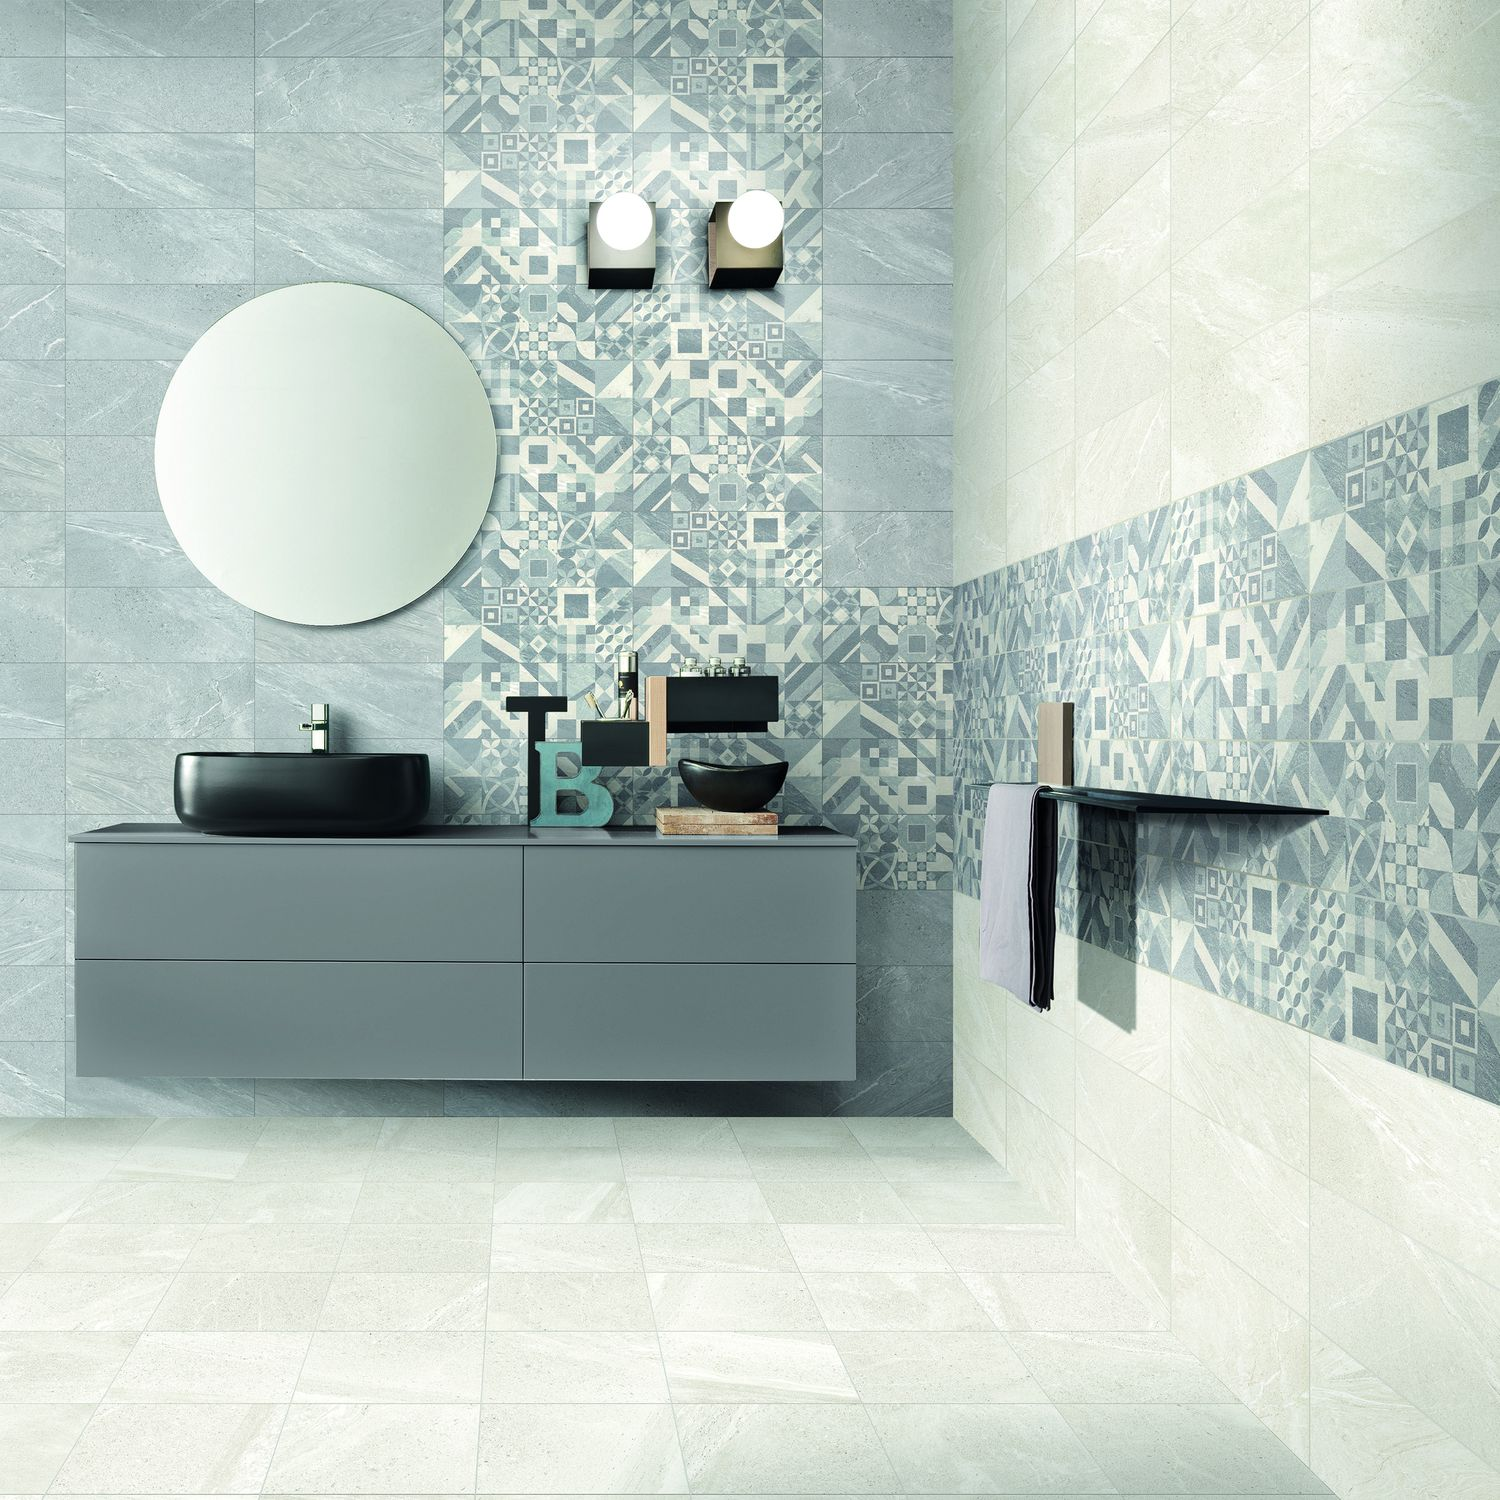 Bathroom tile / wall / porcelain stoneware / patterned - CARDOSO ...